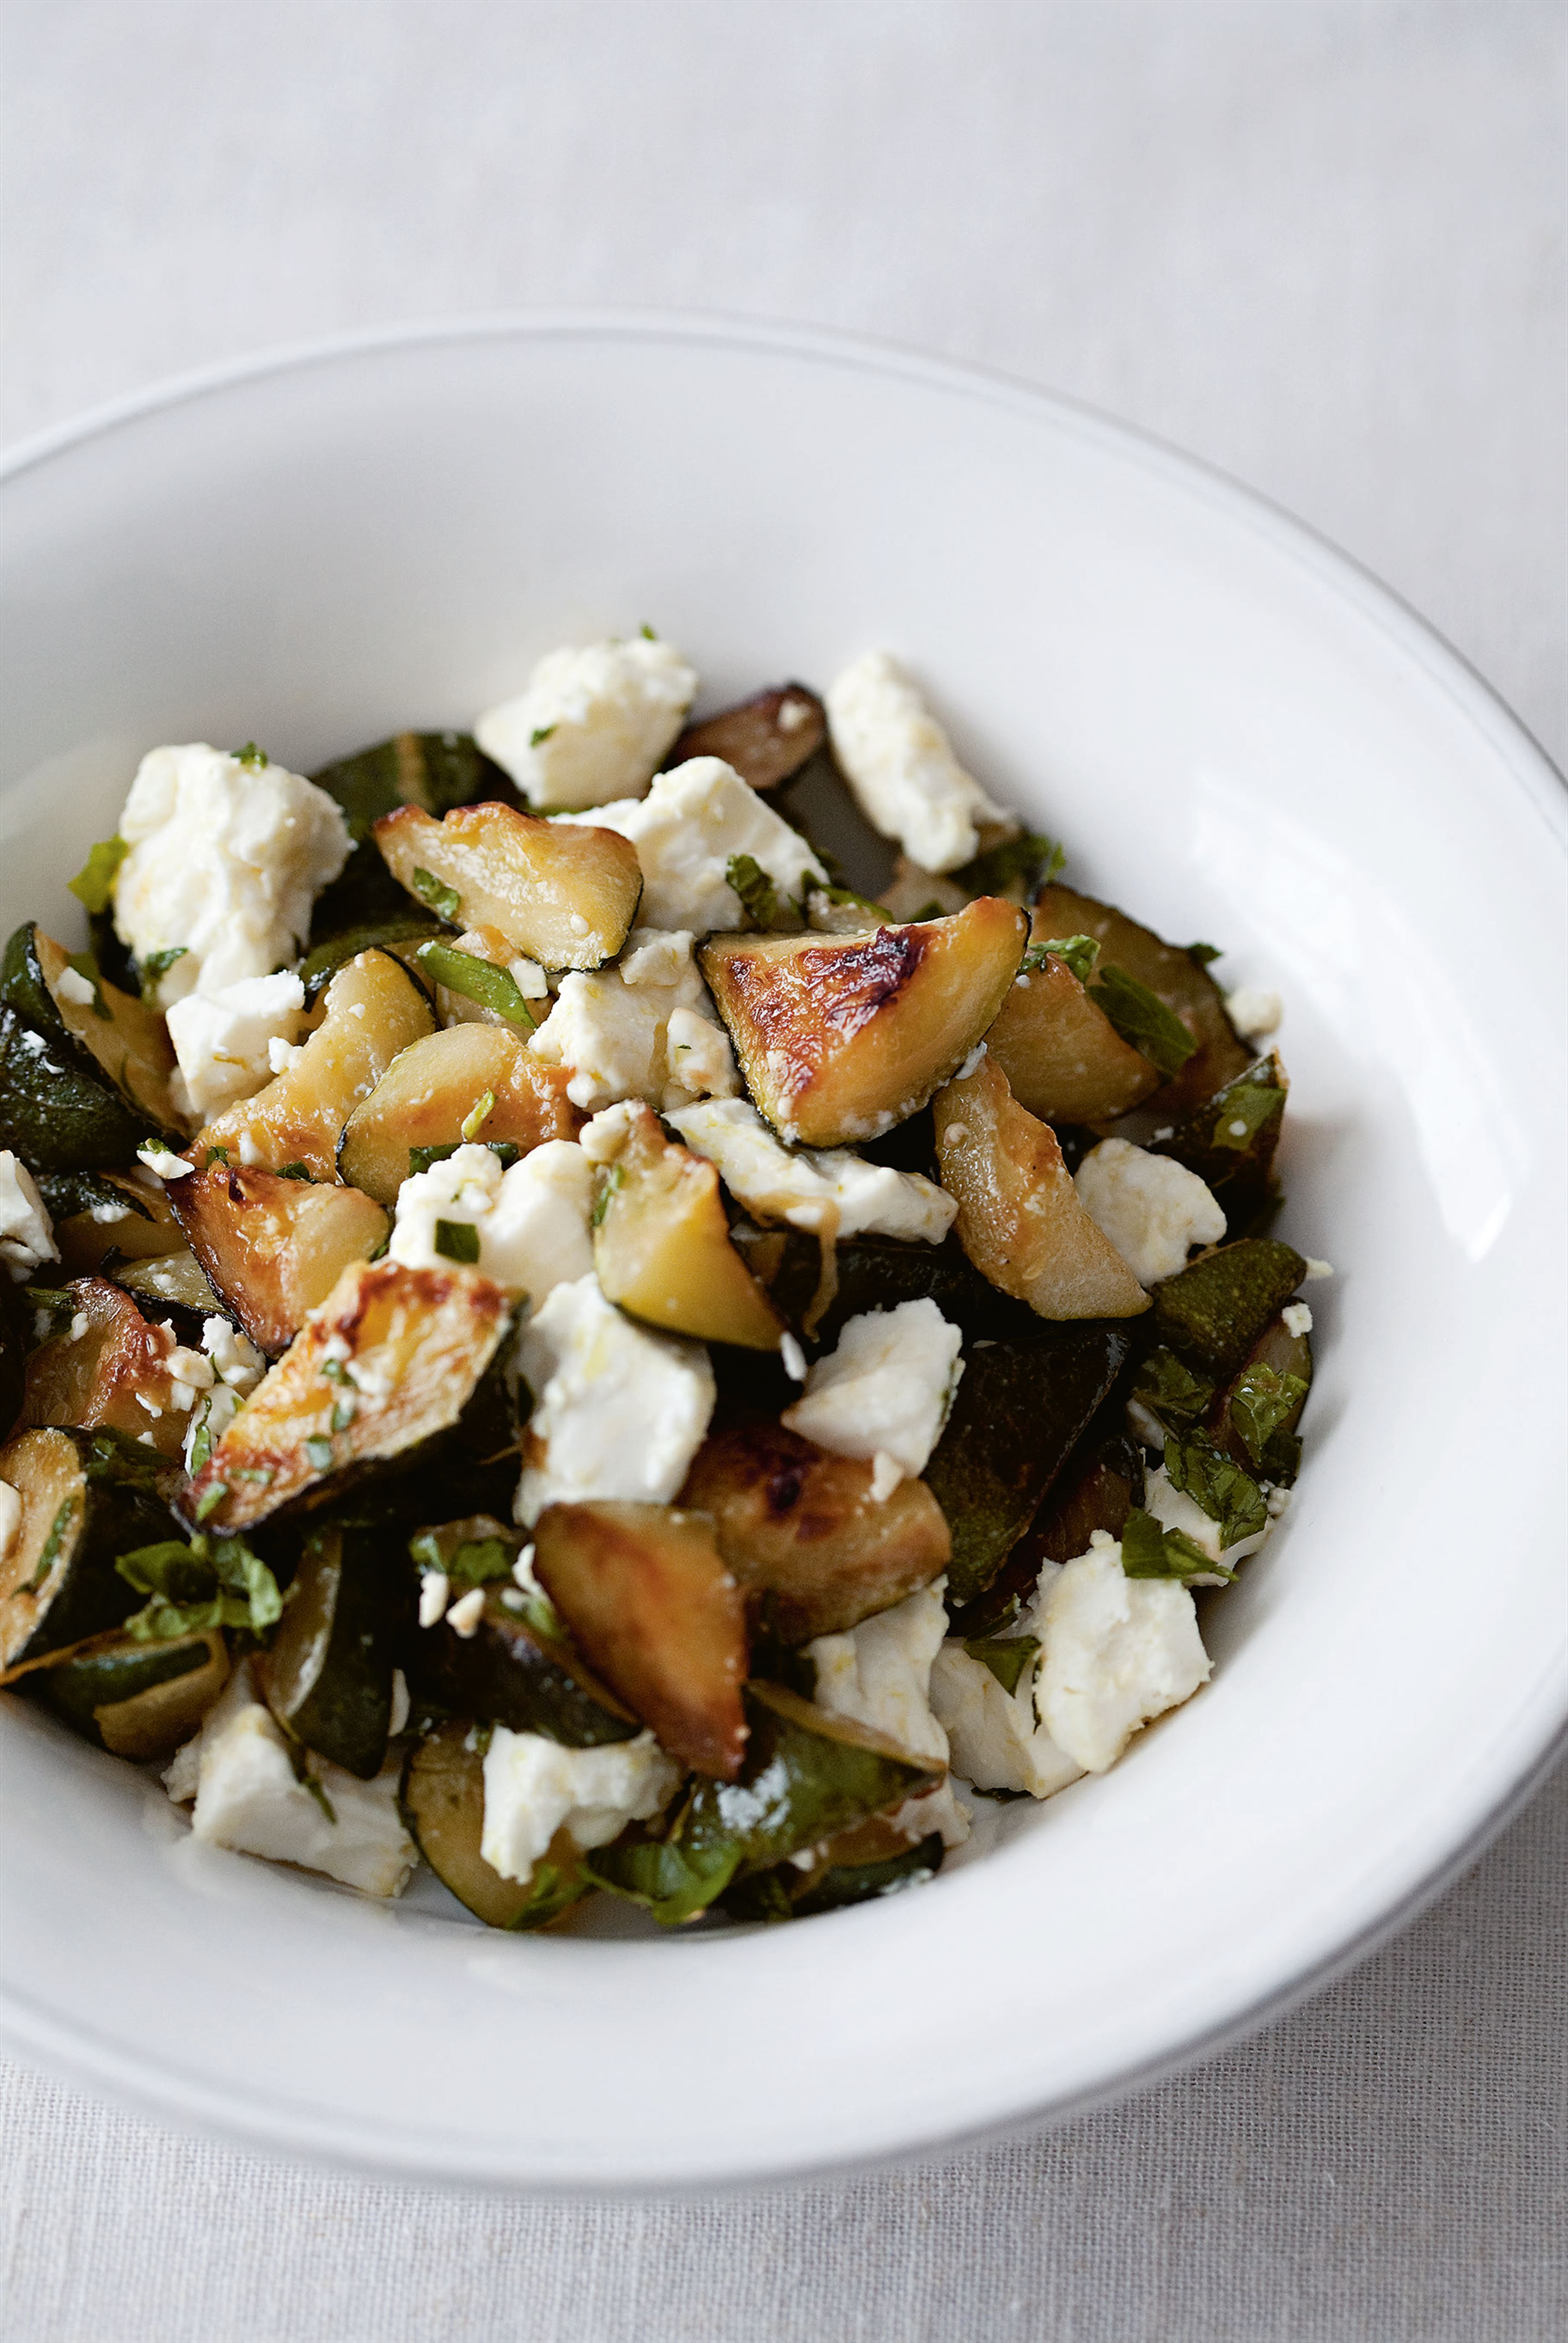 Warm courgette & feta with herbs